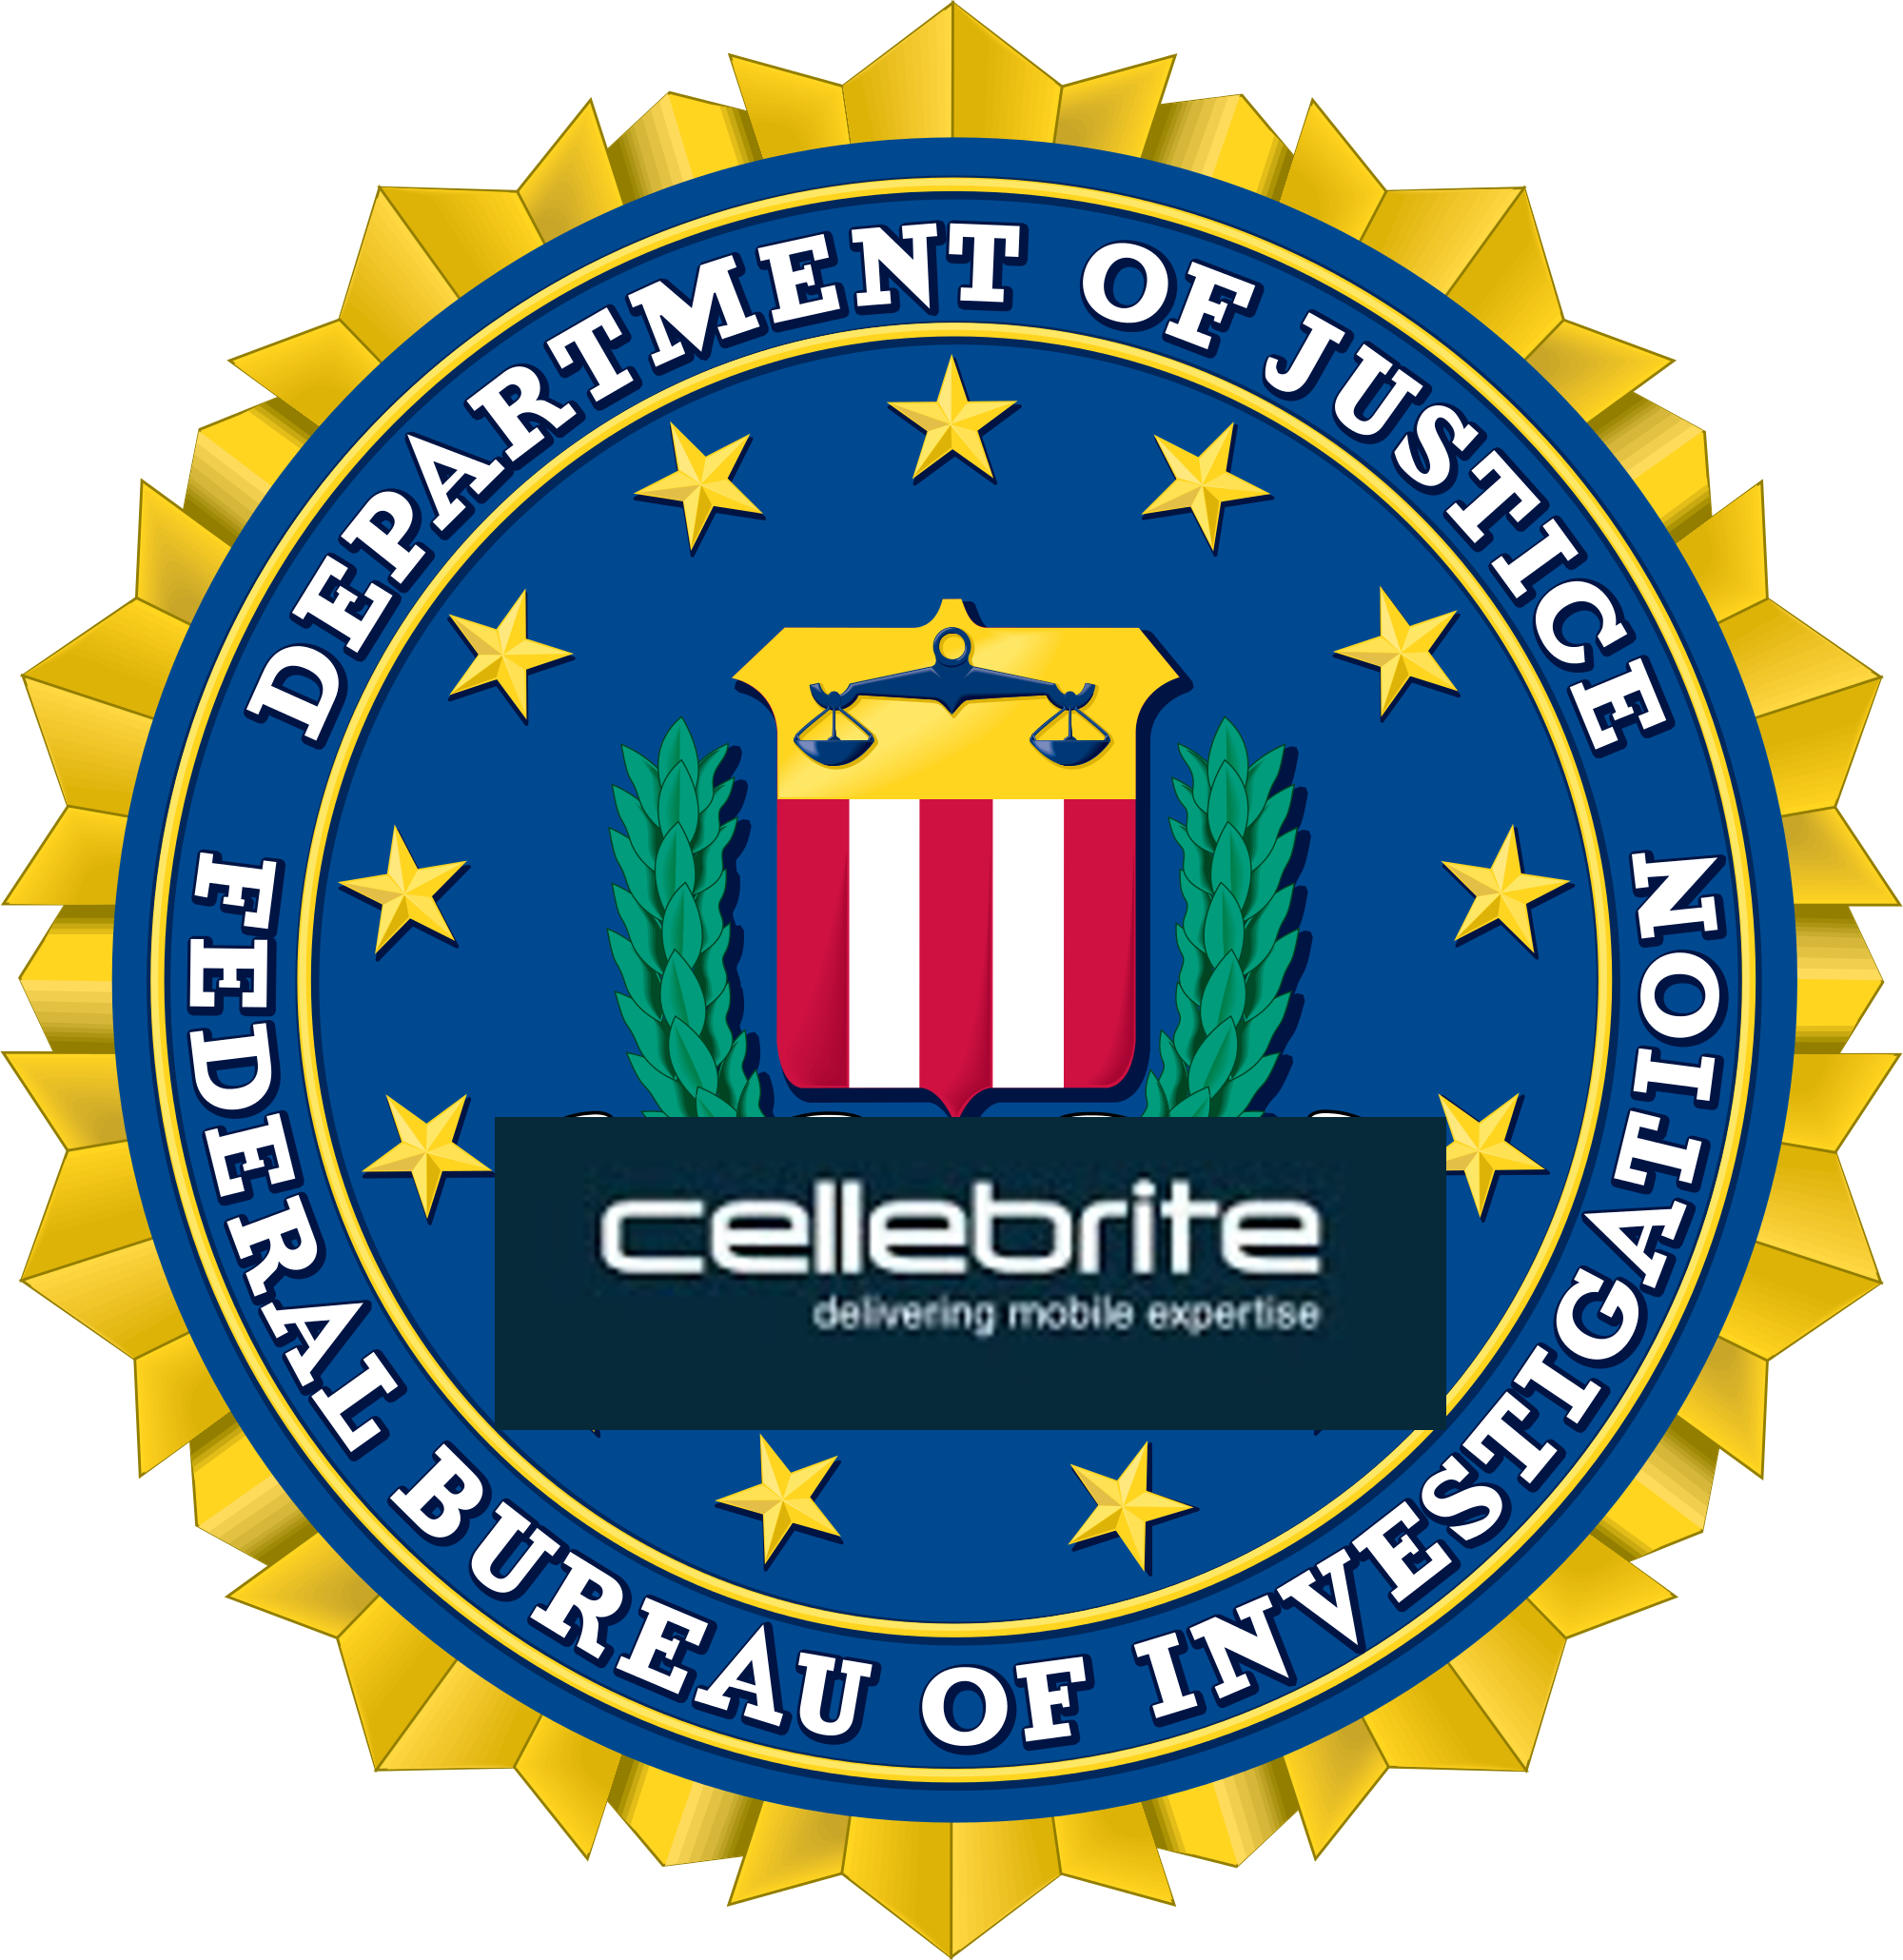 FBI Cellebrite